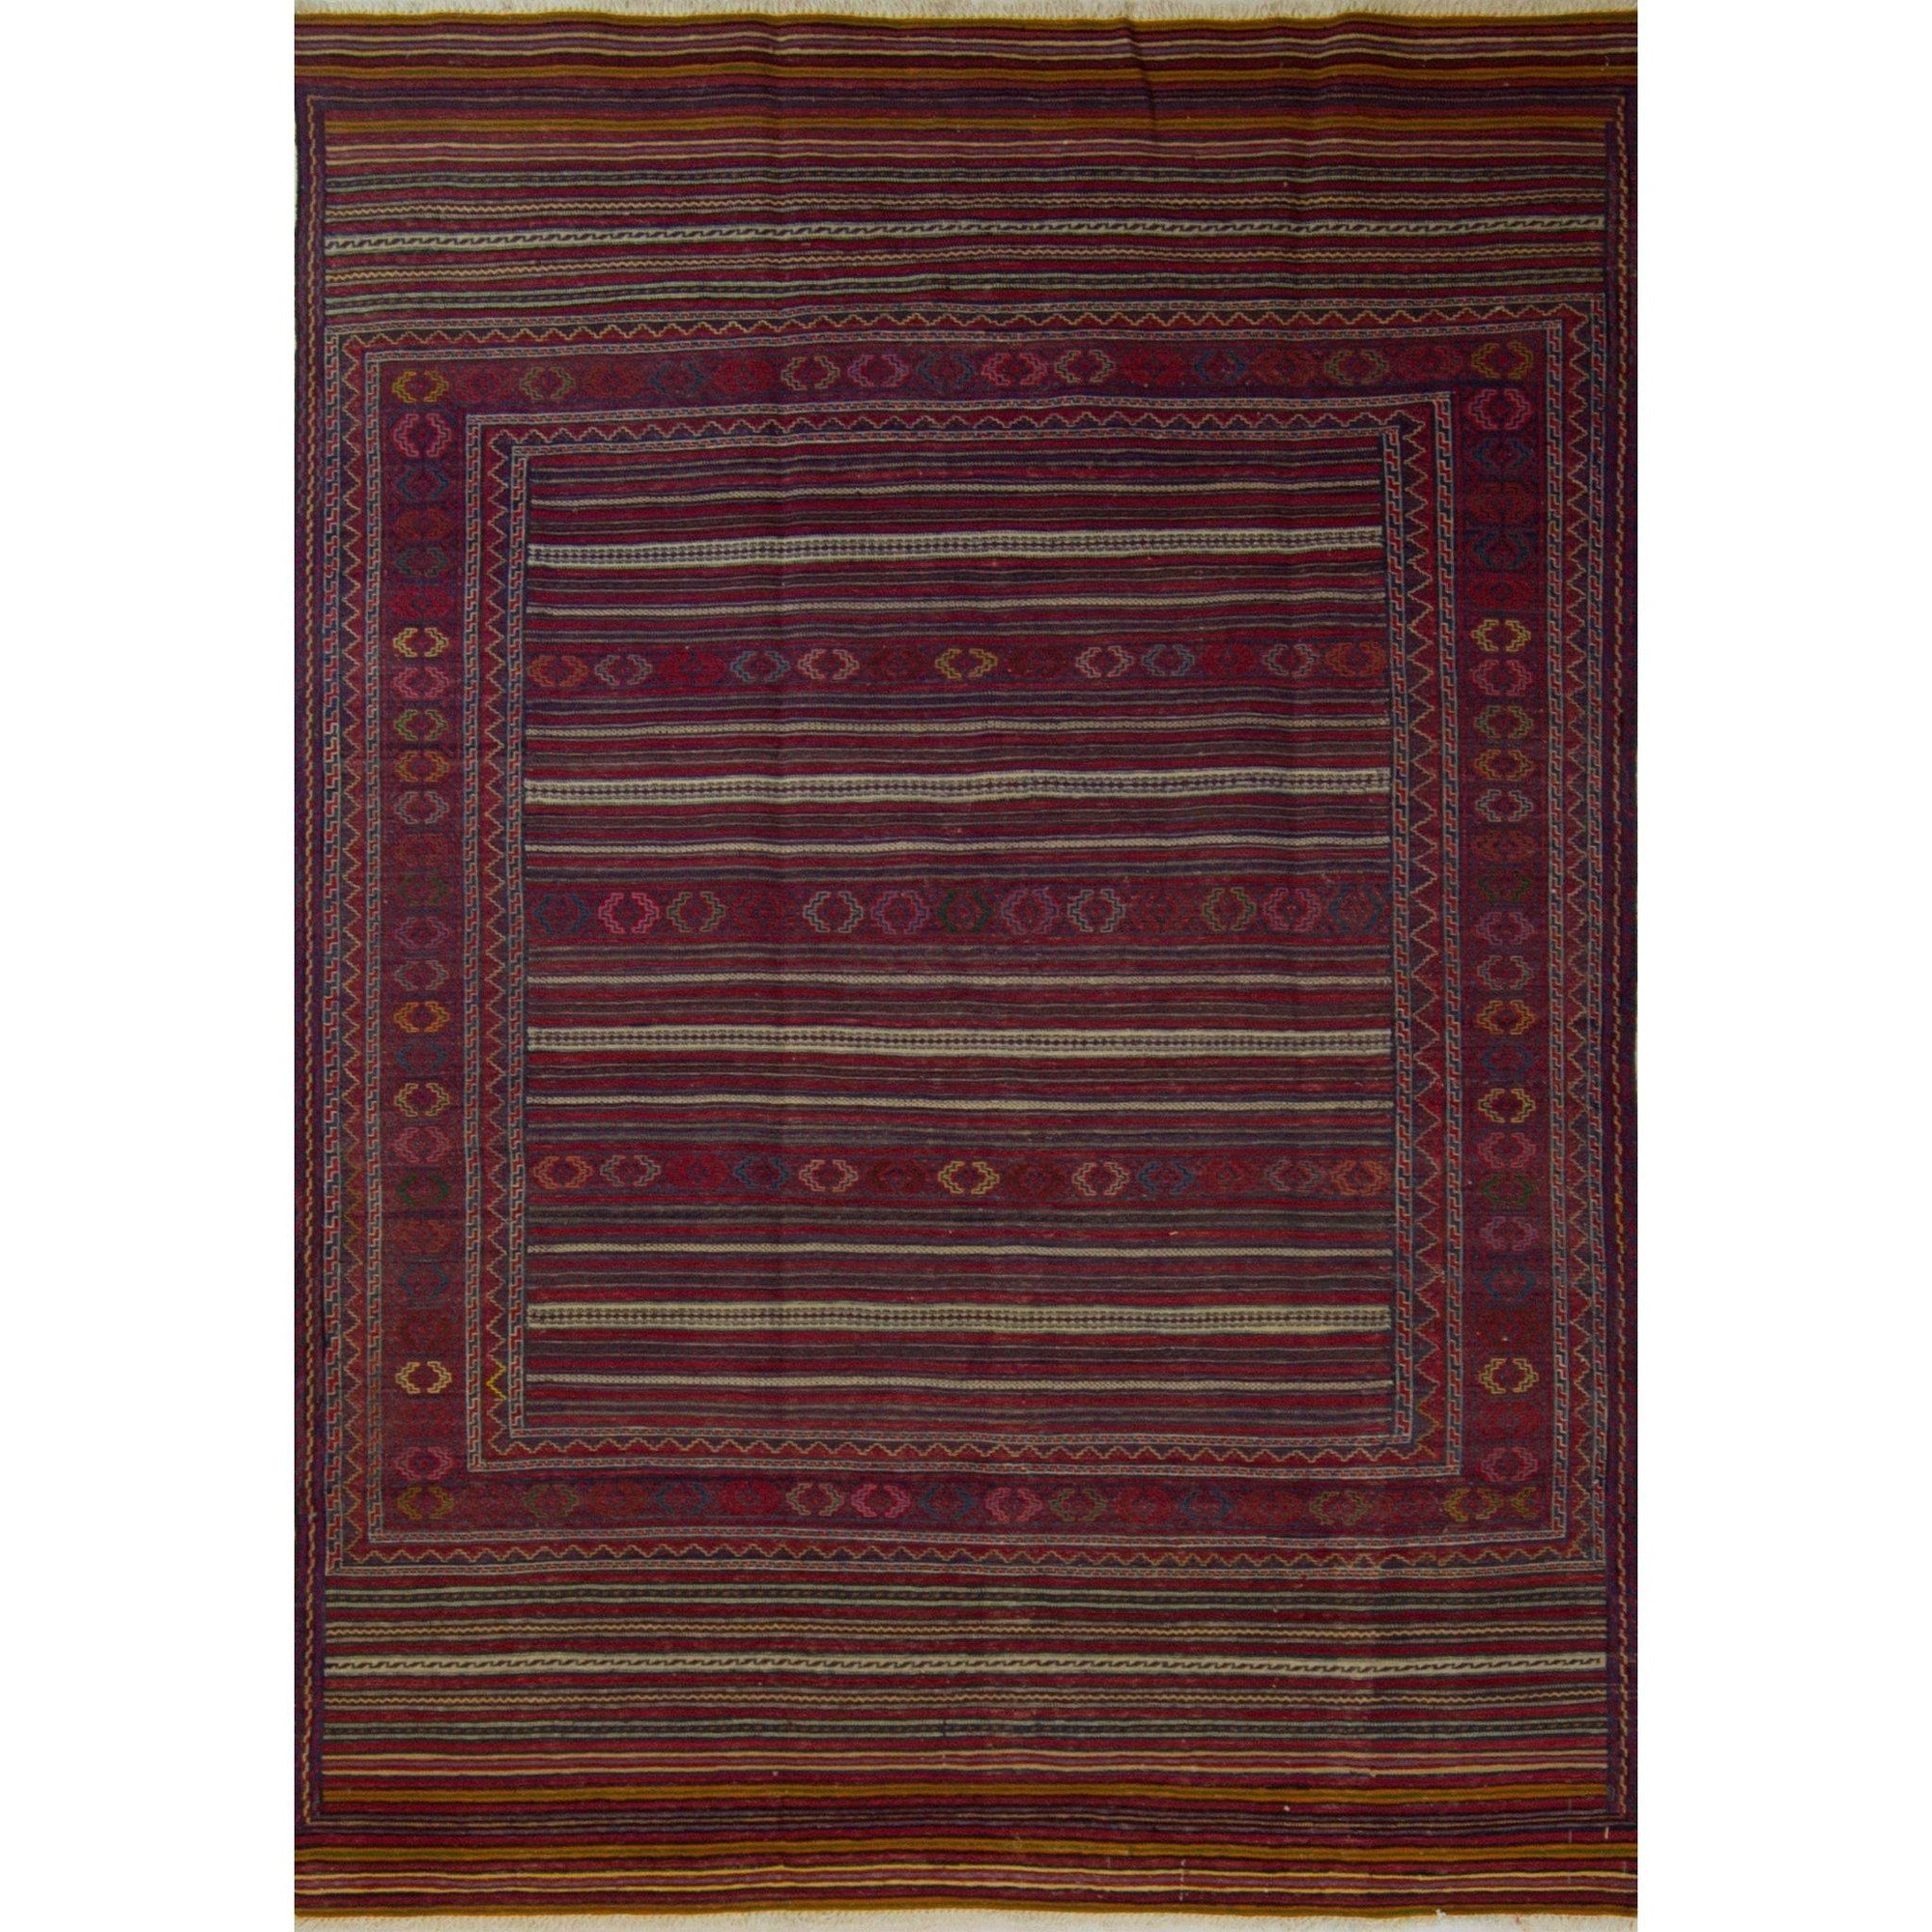 Super Fine Persian Kilim 137cm x 191cm Persian-Rug | House-of-Haghi | NewMarket | Auckland | NZ | Handmade Persian Rugs | Hand Knotted Persian Rugs